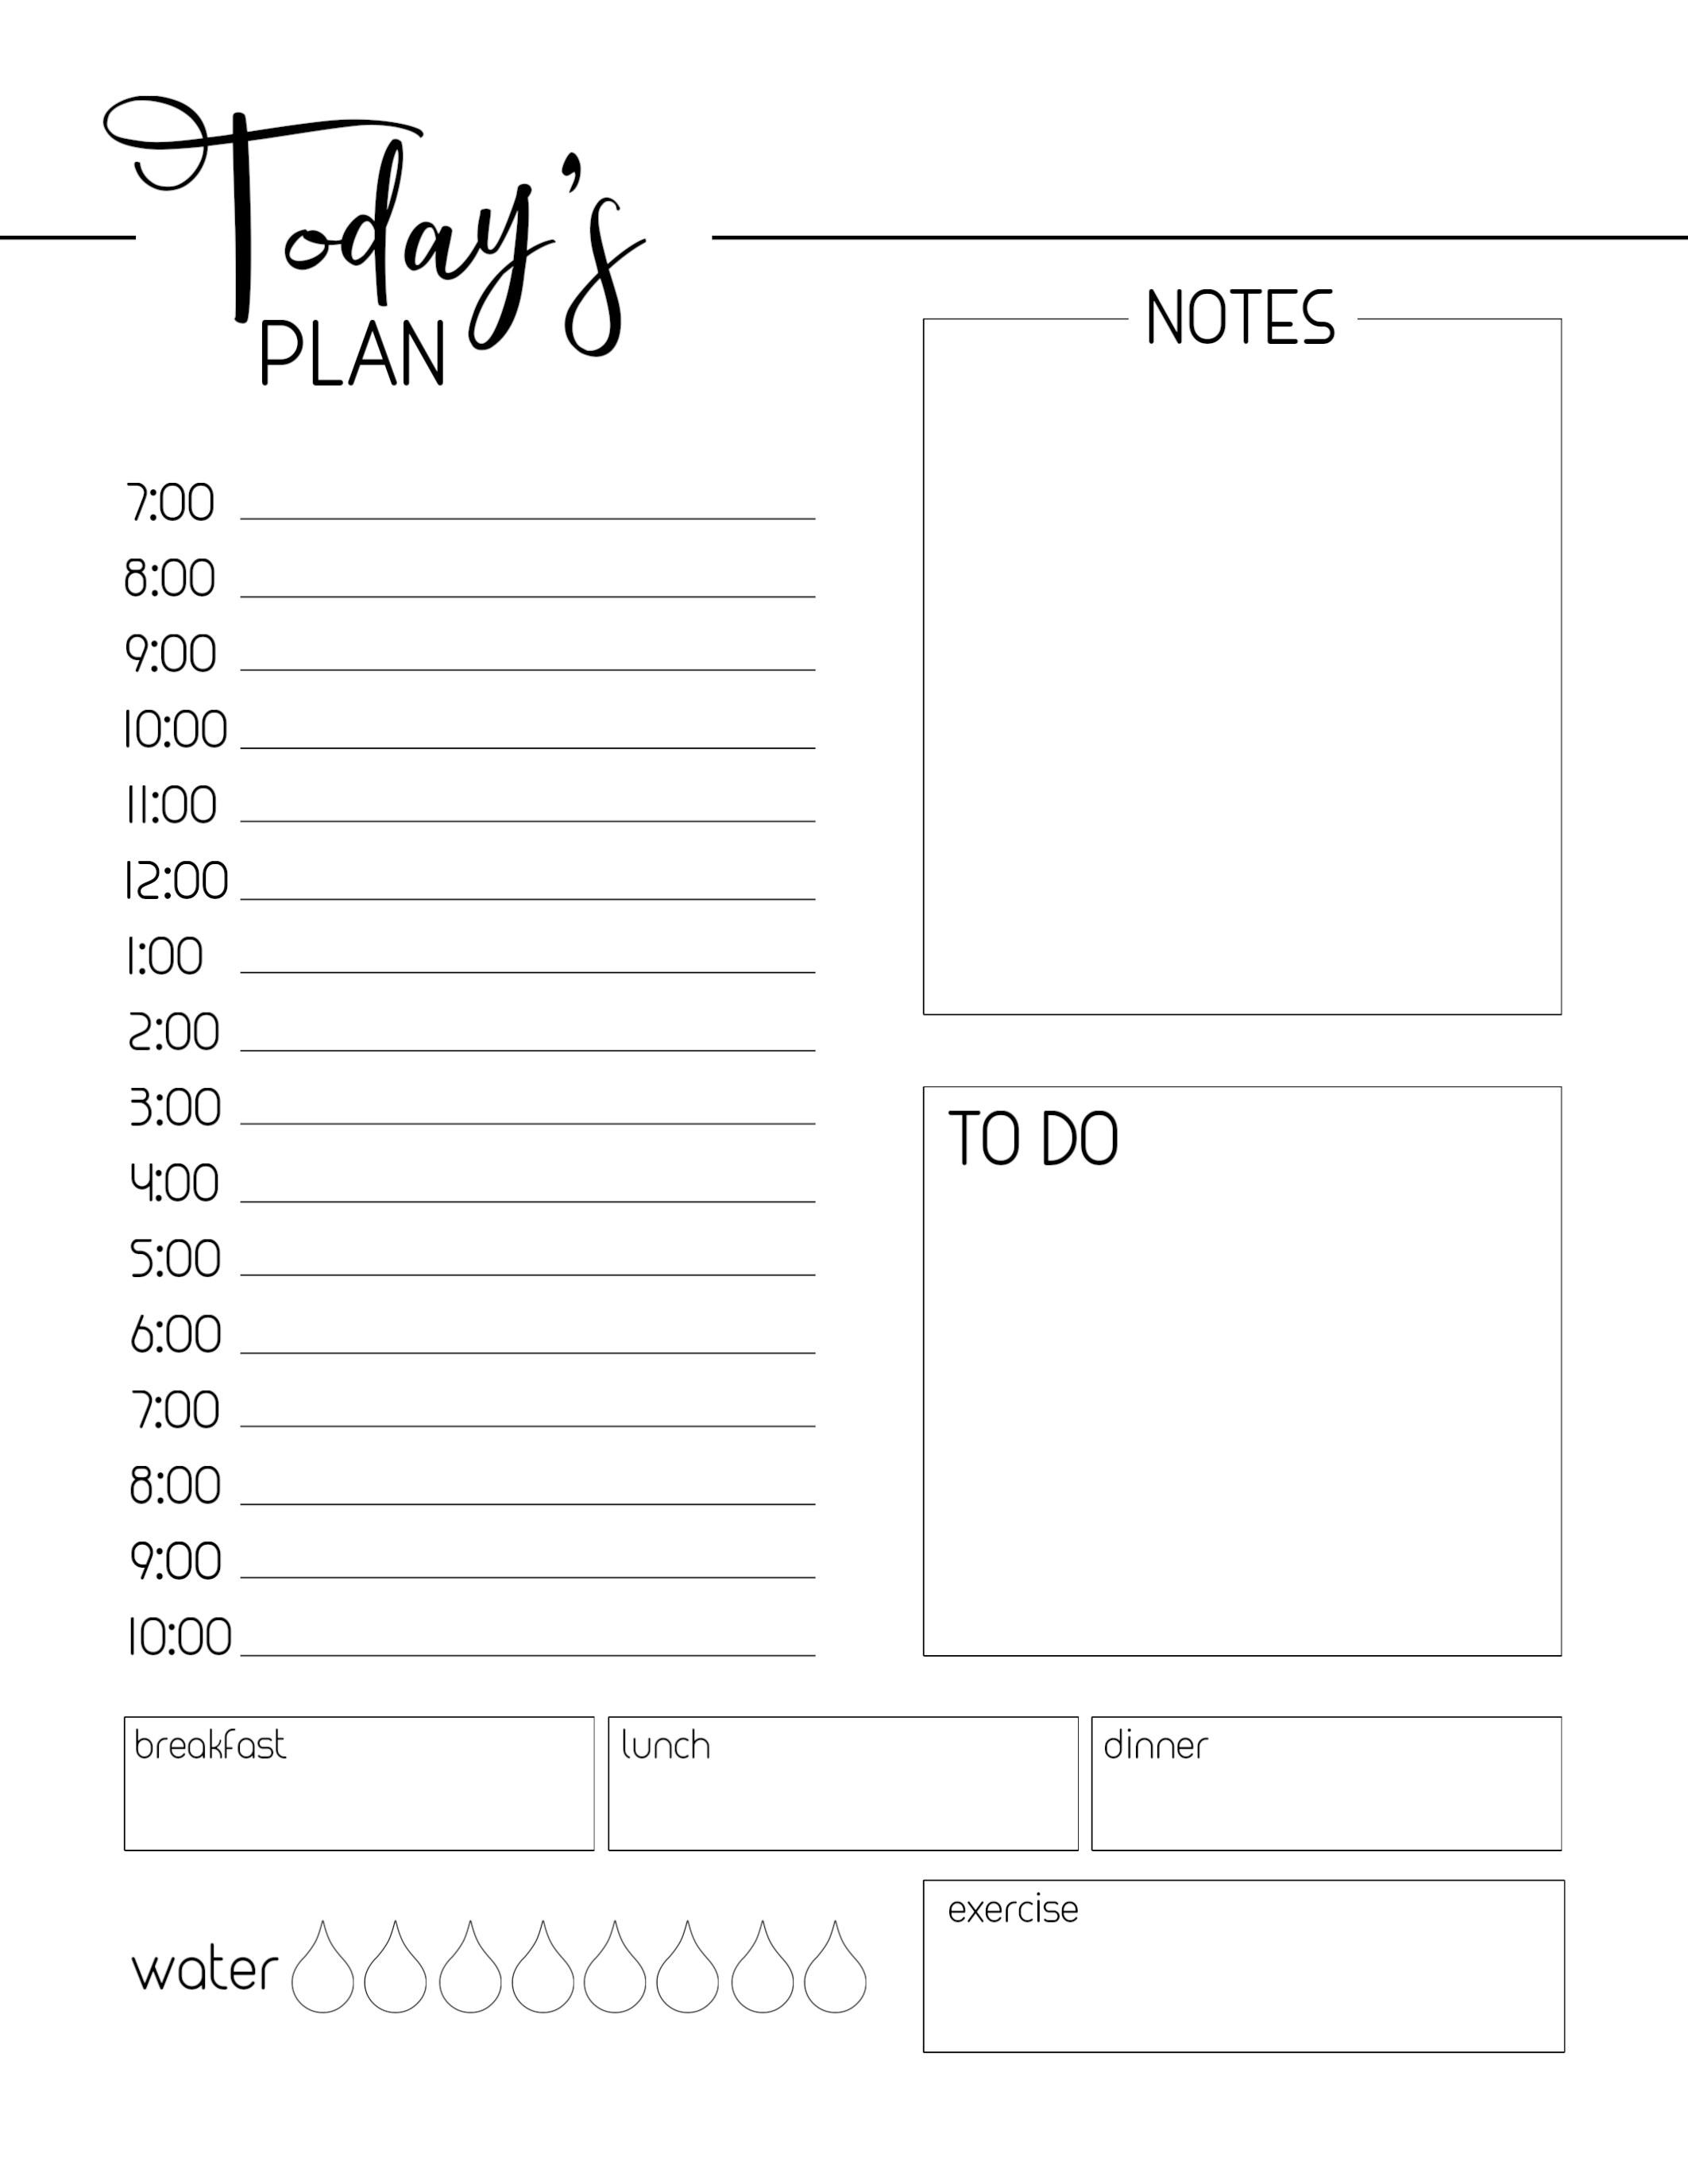 Free Printable Daily Planner Template - Paper Trail Design with Free Printable Day Planner Templates